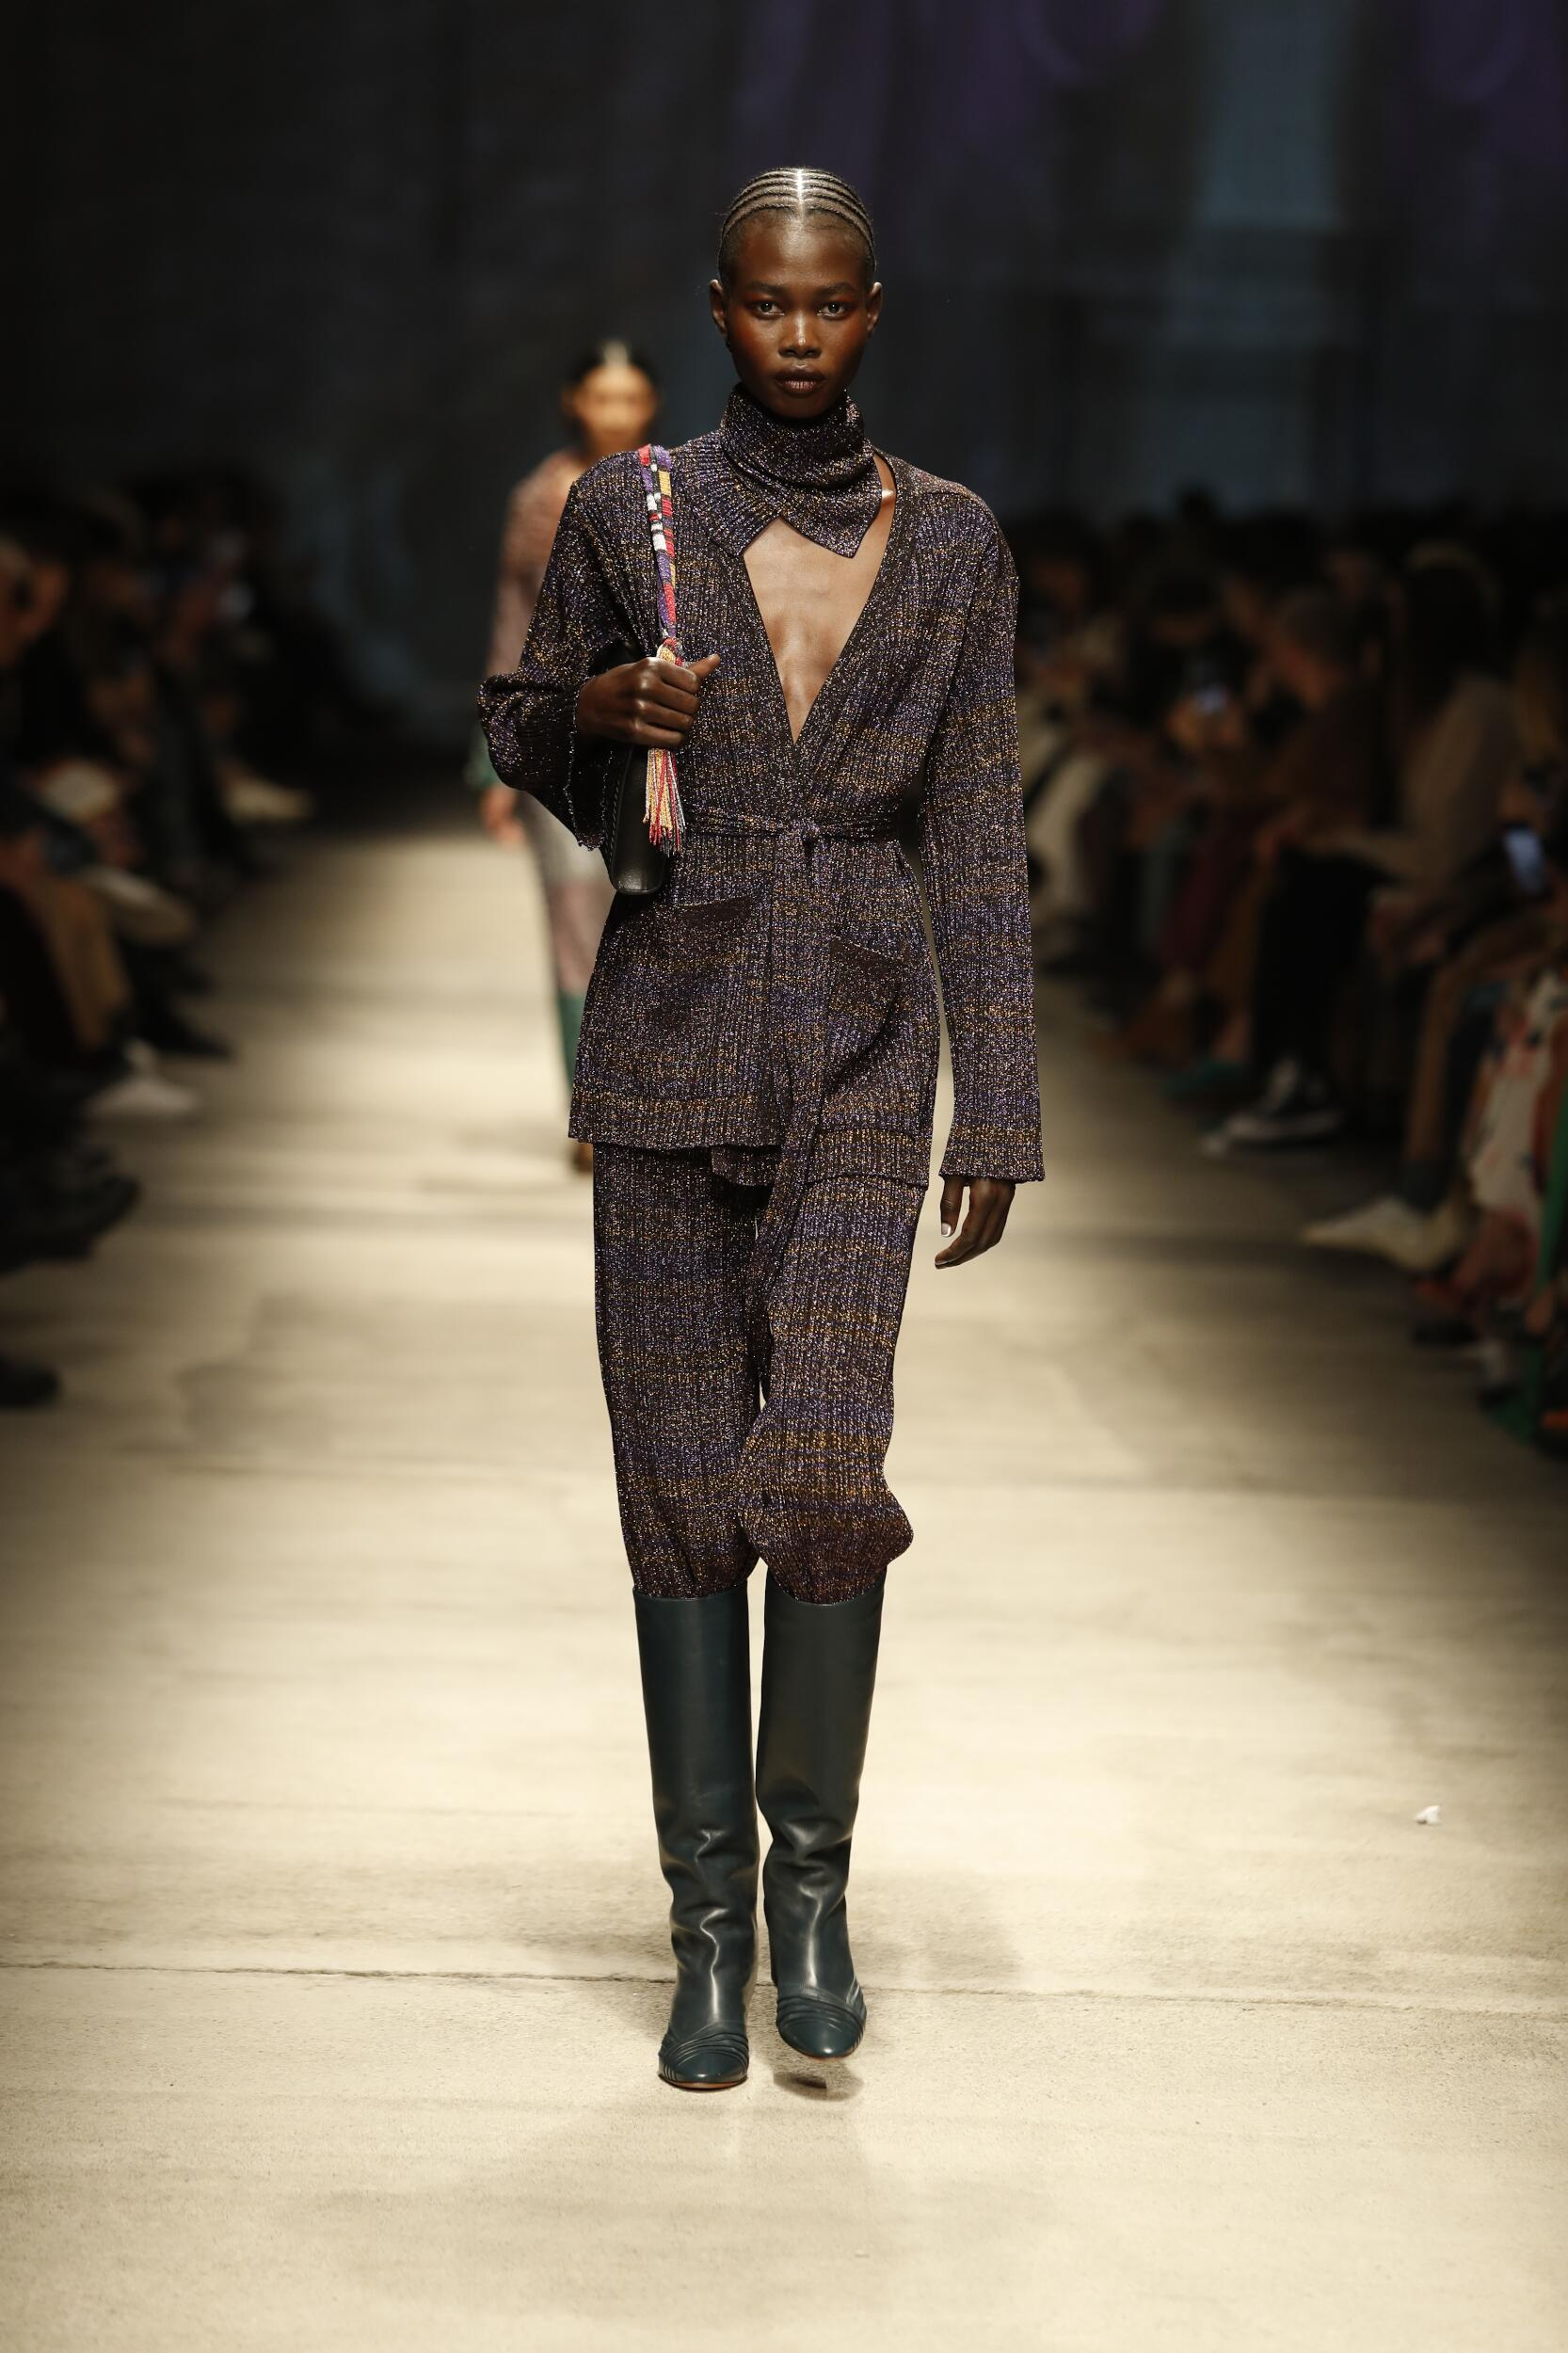 Missoni Womenswear Collection Trends